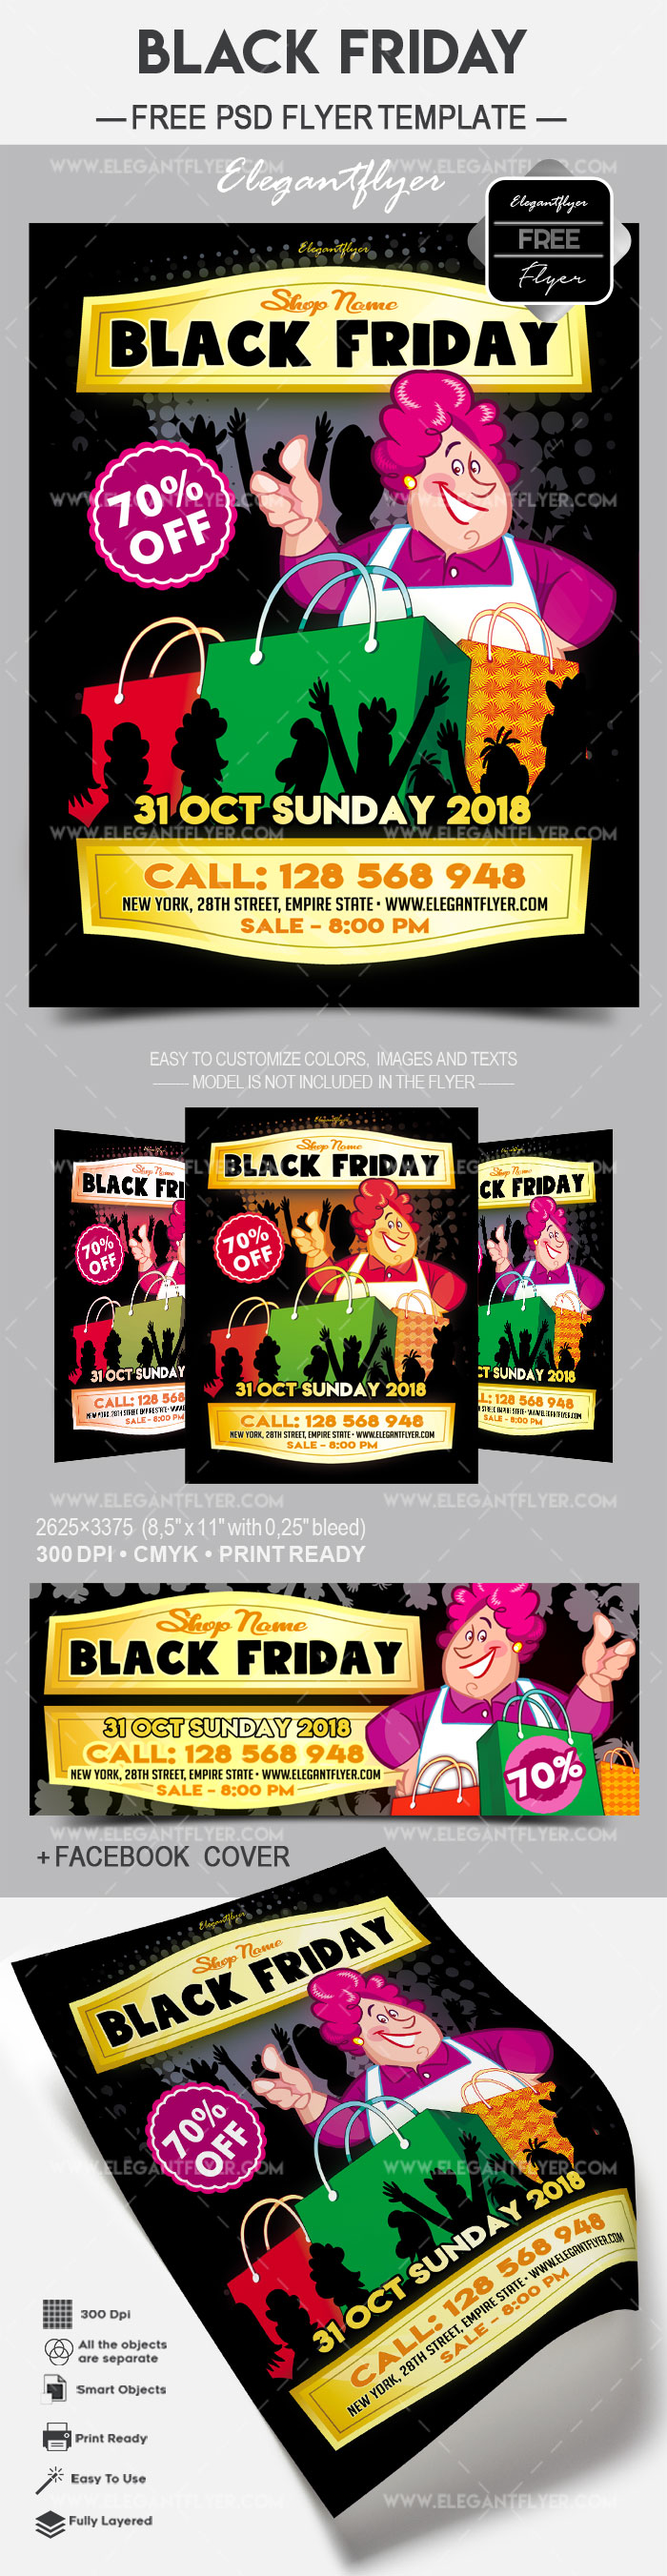 Black Friday – Free Flyer PSD Template